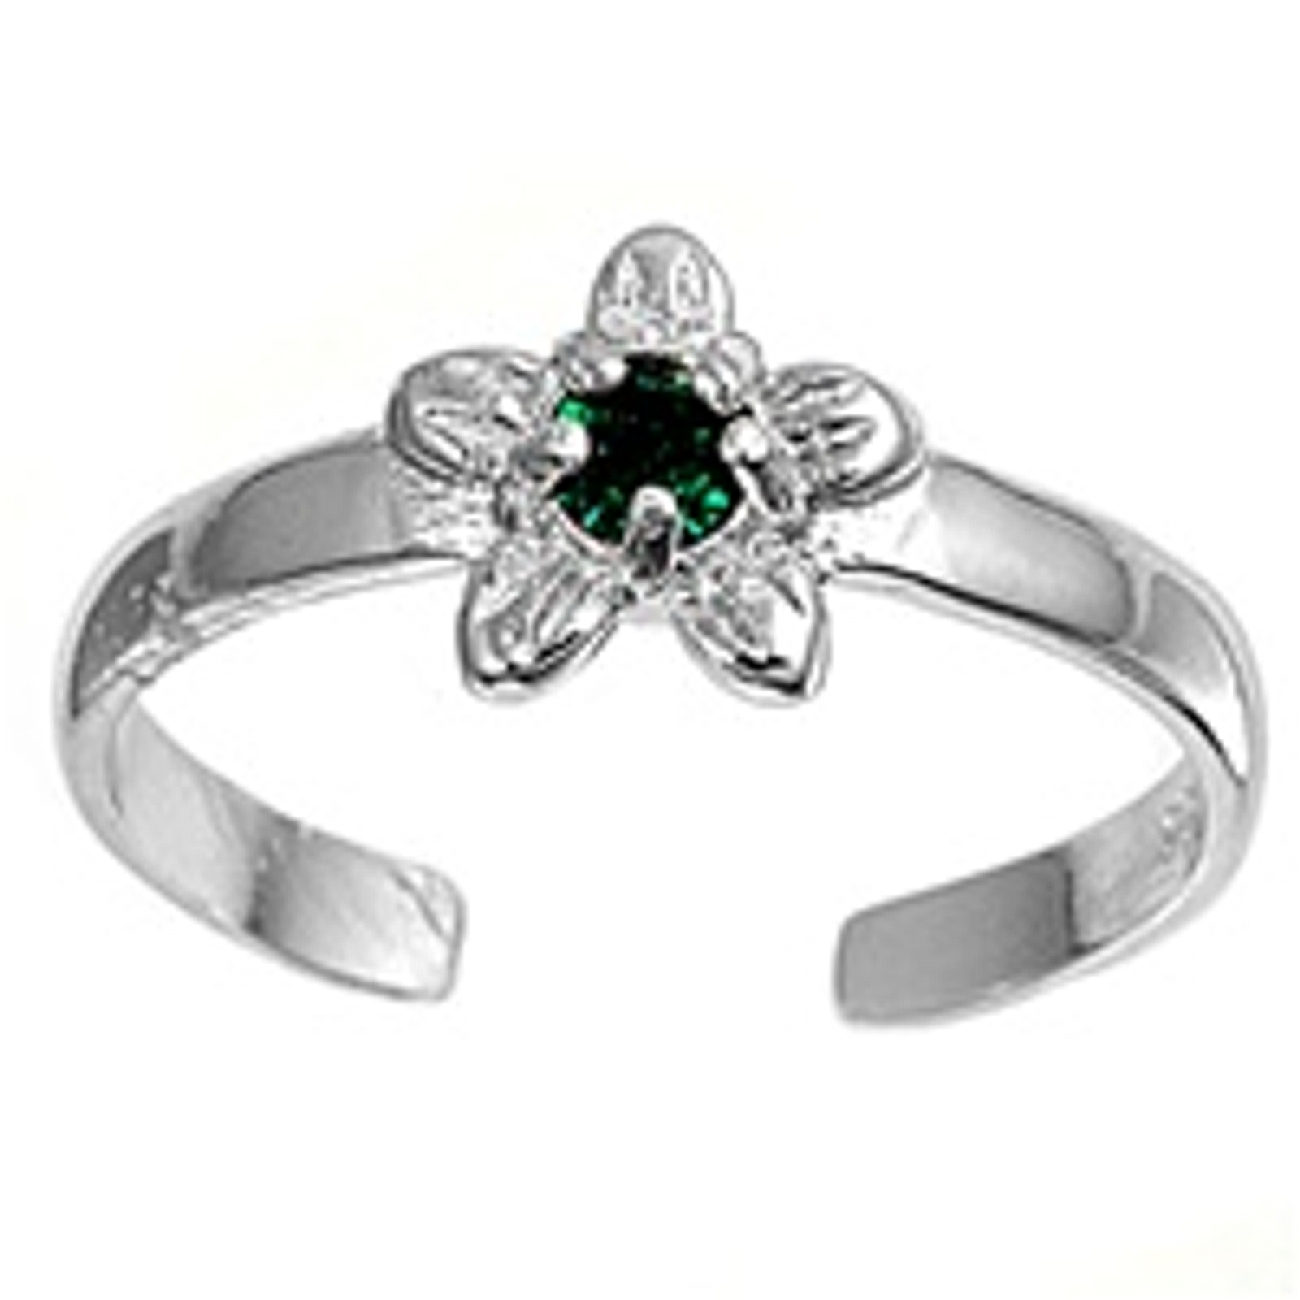 Green Cubic Zirconia Daisy Flower Adjustable Toe Ring